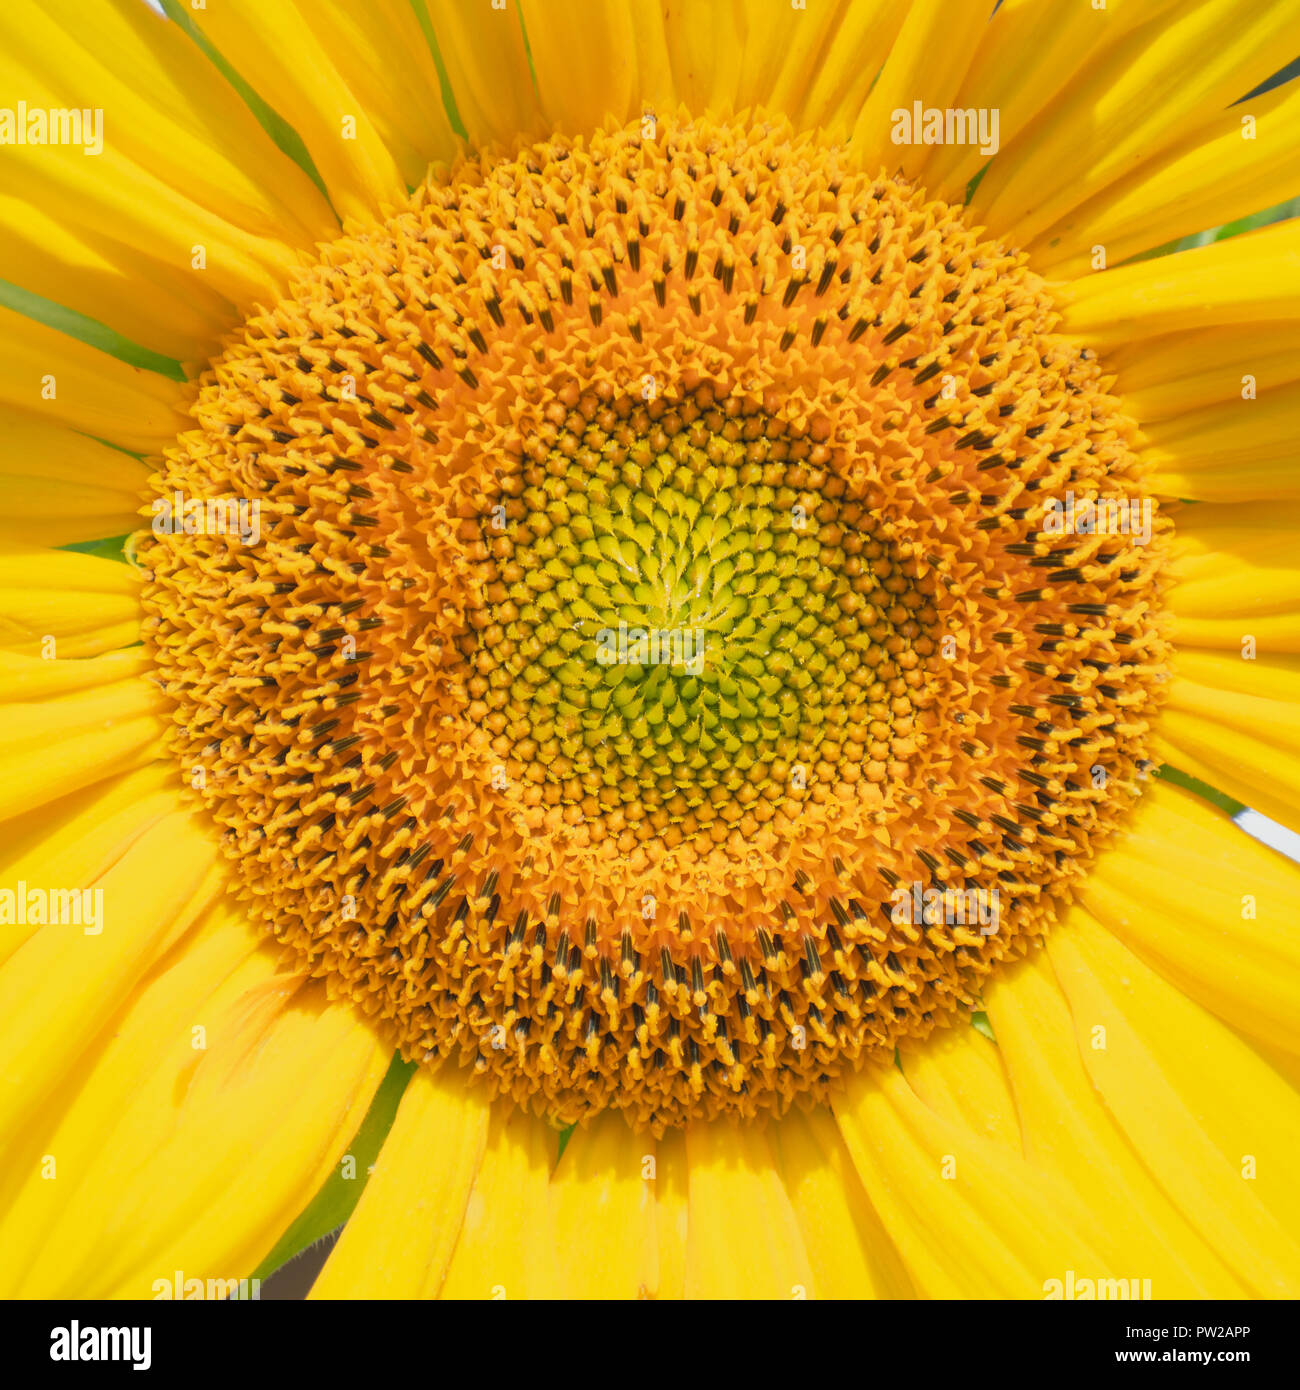 Sunflower head, showing the numerous disk flowers in the centre - Stock Image